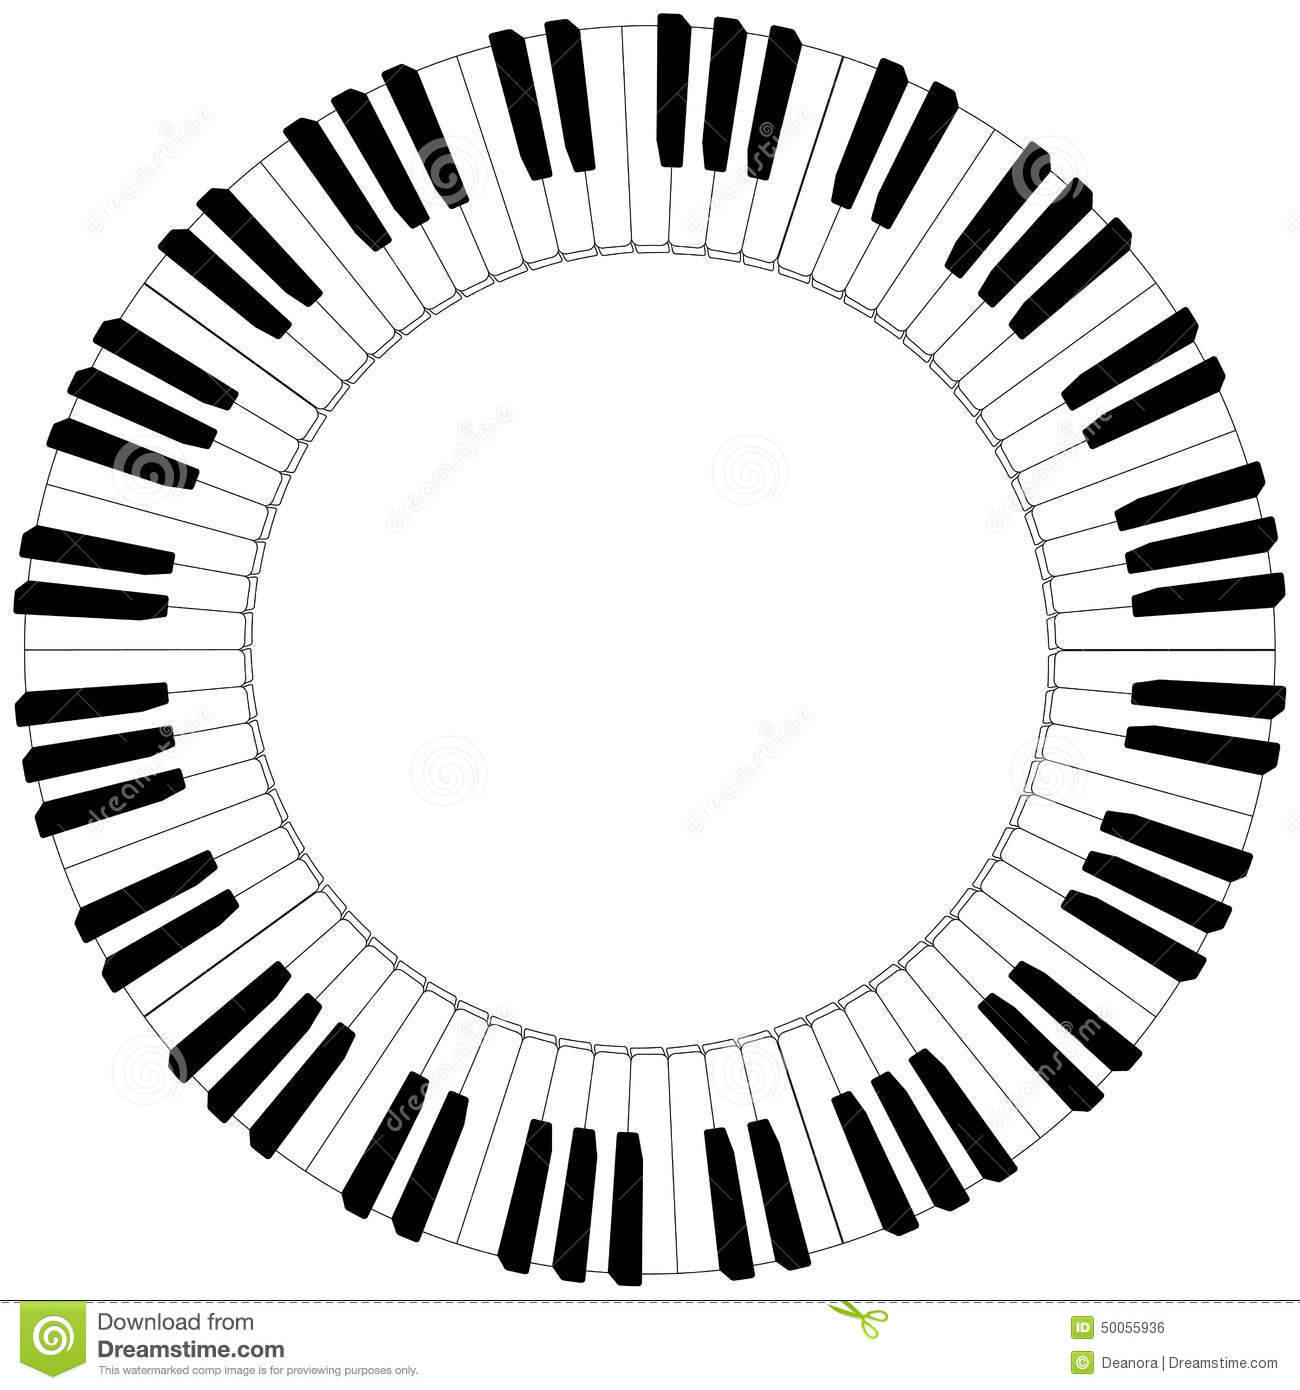 Round Black And White Piano Keyboard Frame Stock Vector